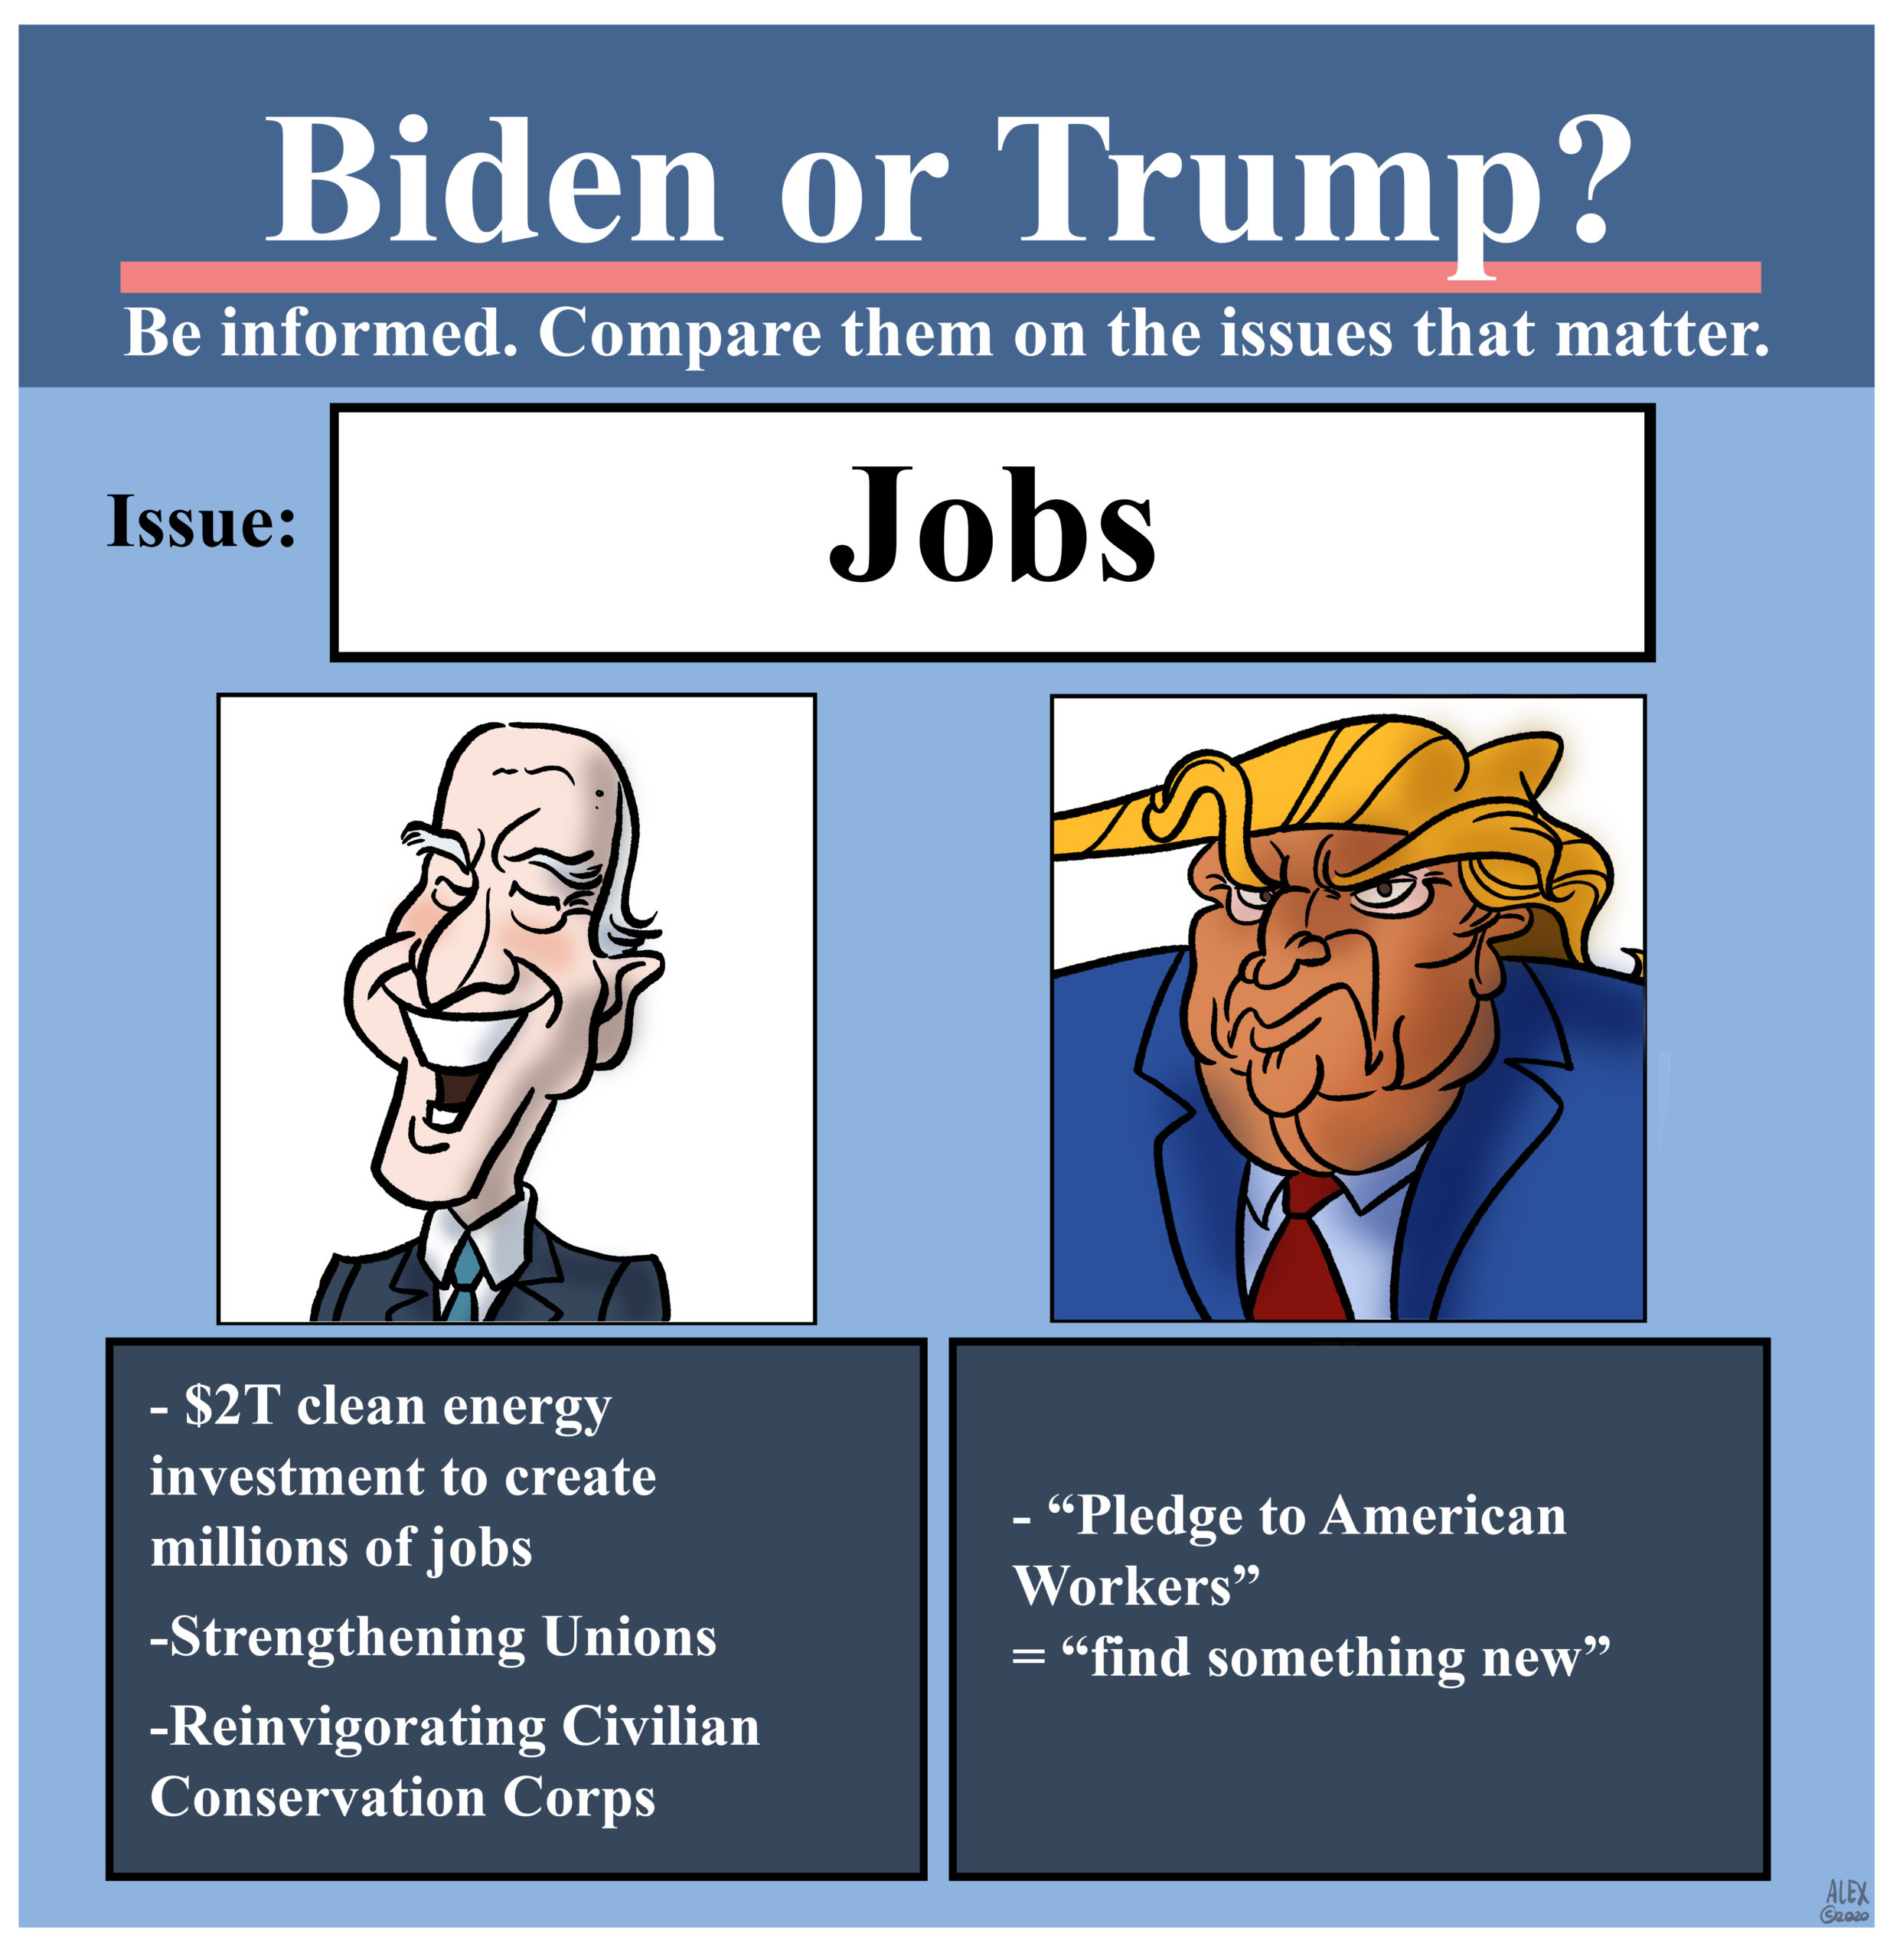 On Jobs: Biden vs. Trump